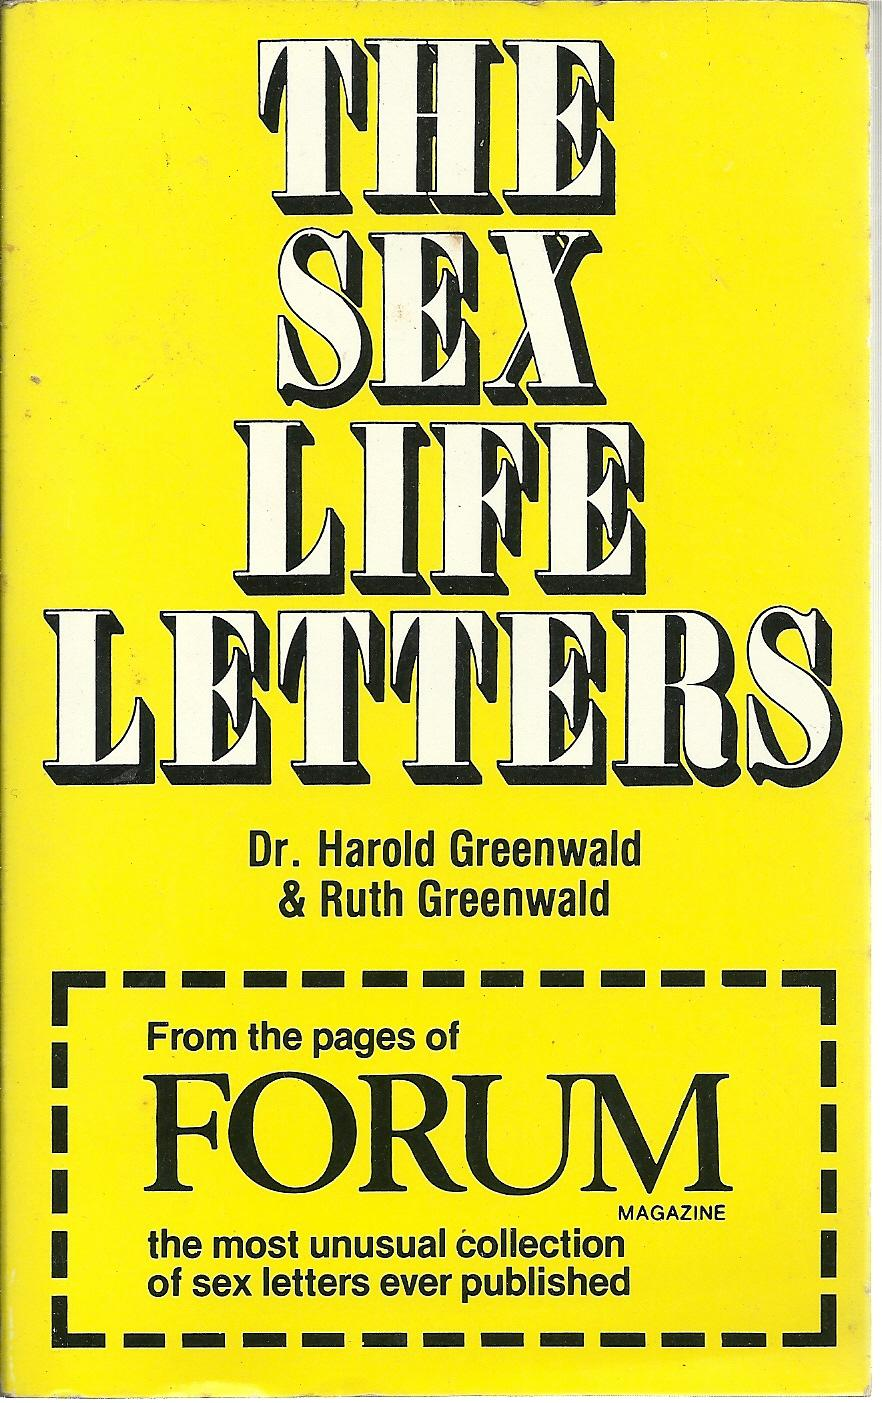 Sex life letters